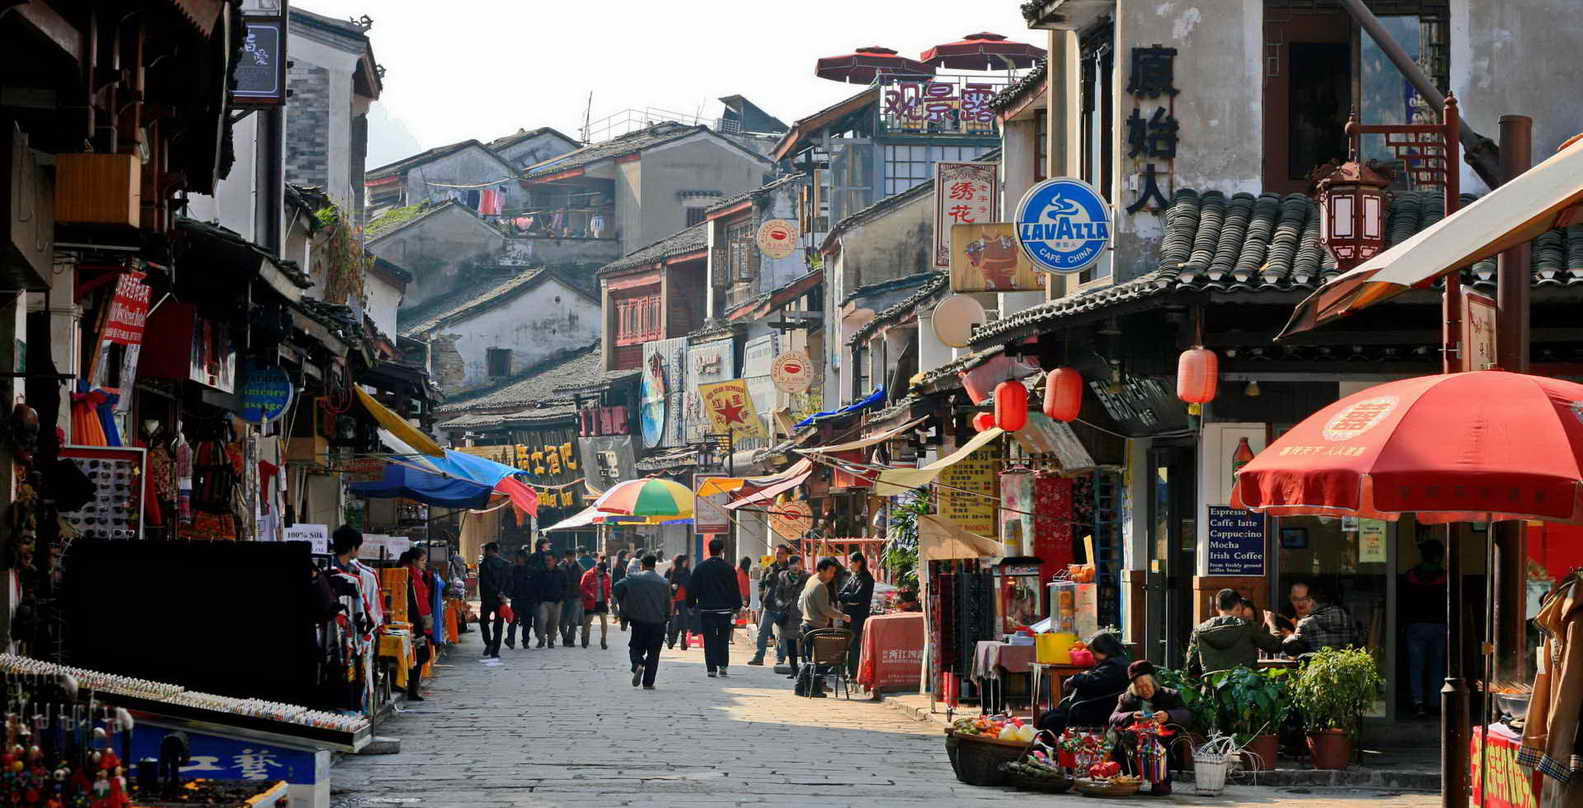 west-street-yangshuo-yangshuo-village-inn-guilin-yangshuo-china